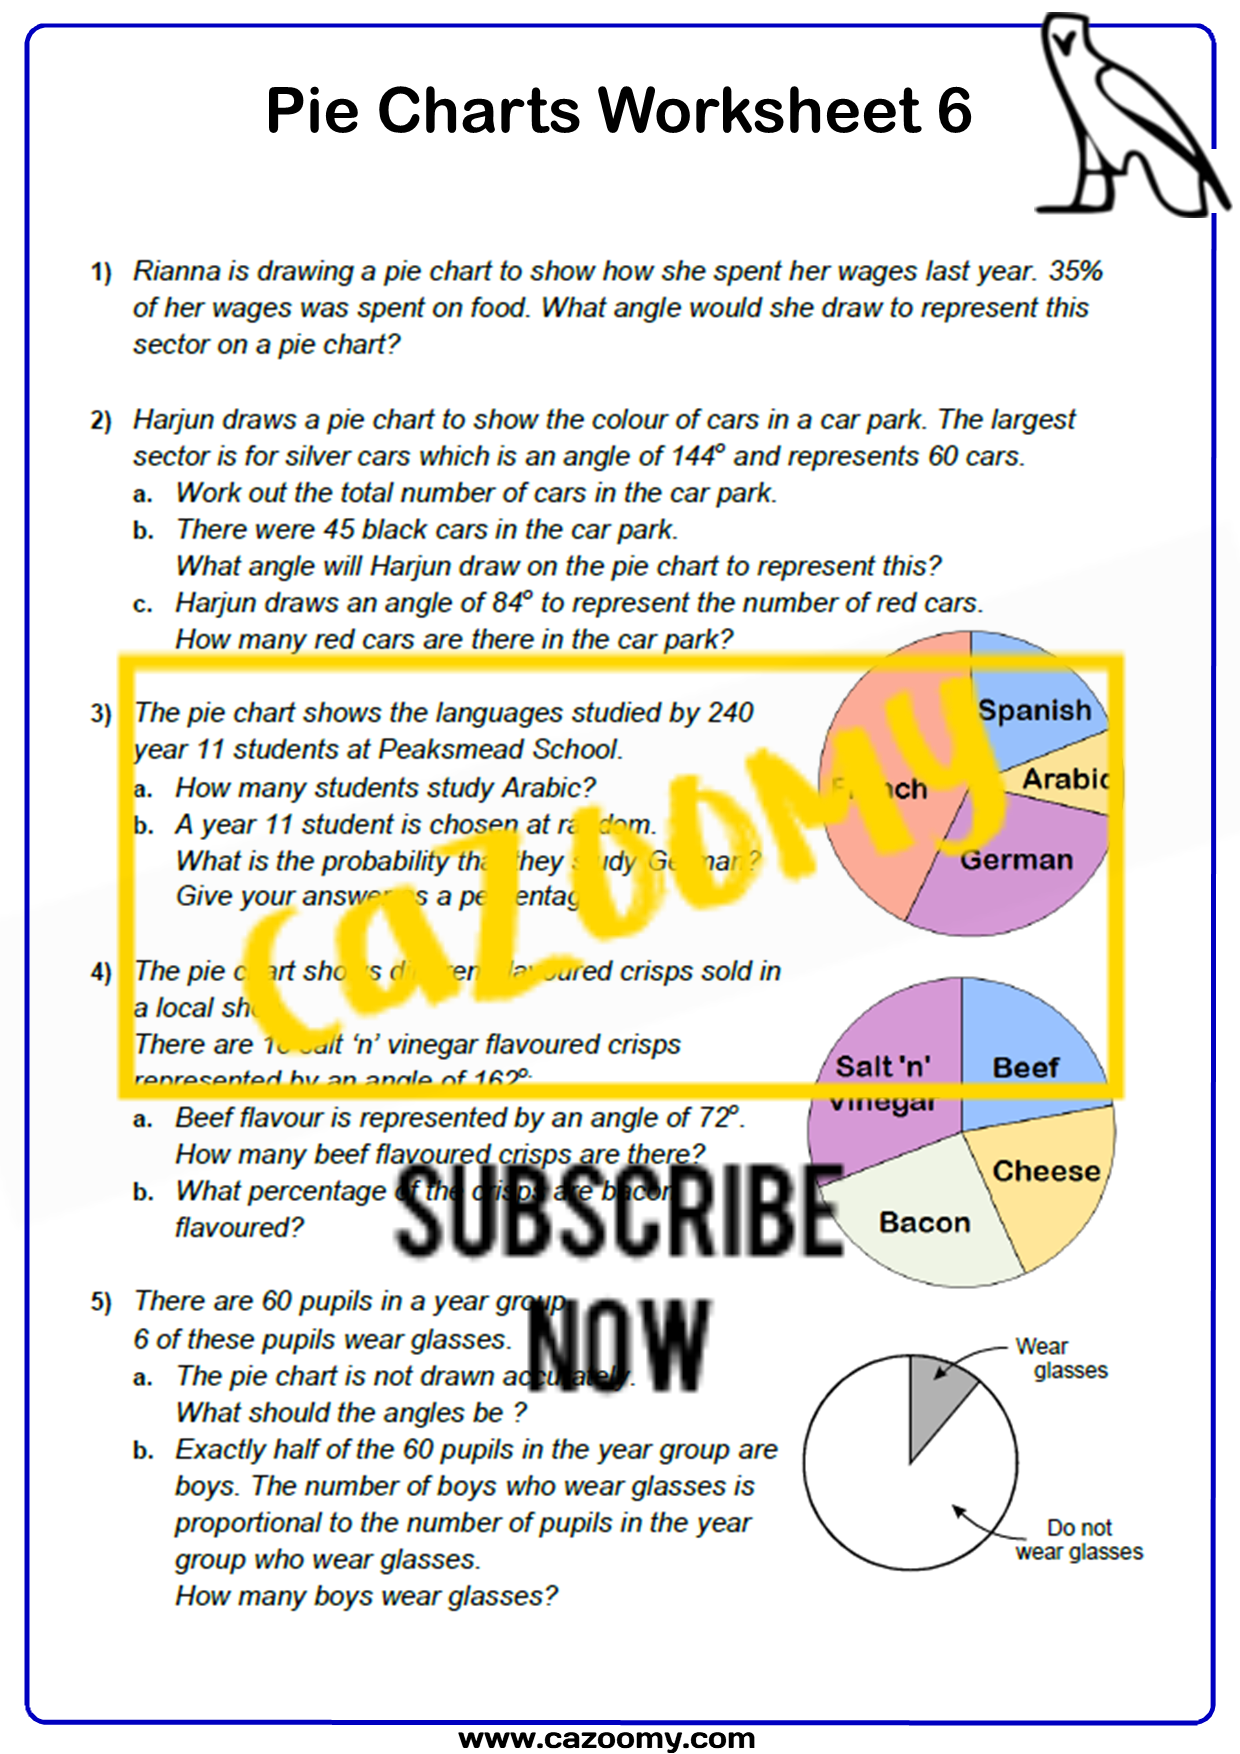 Pie Charts Worksheet 6